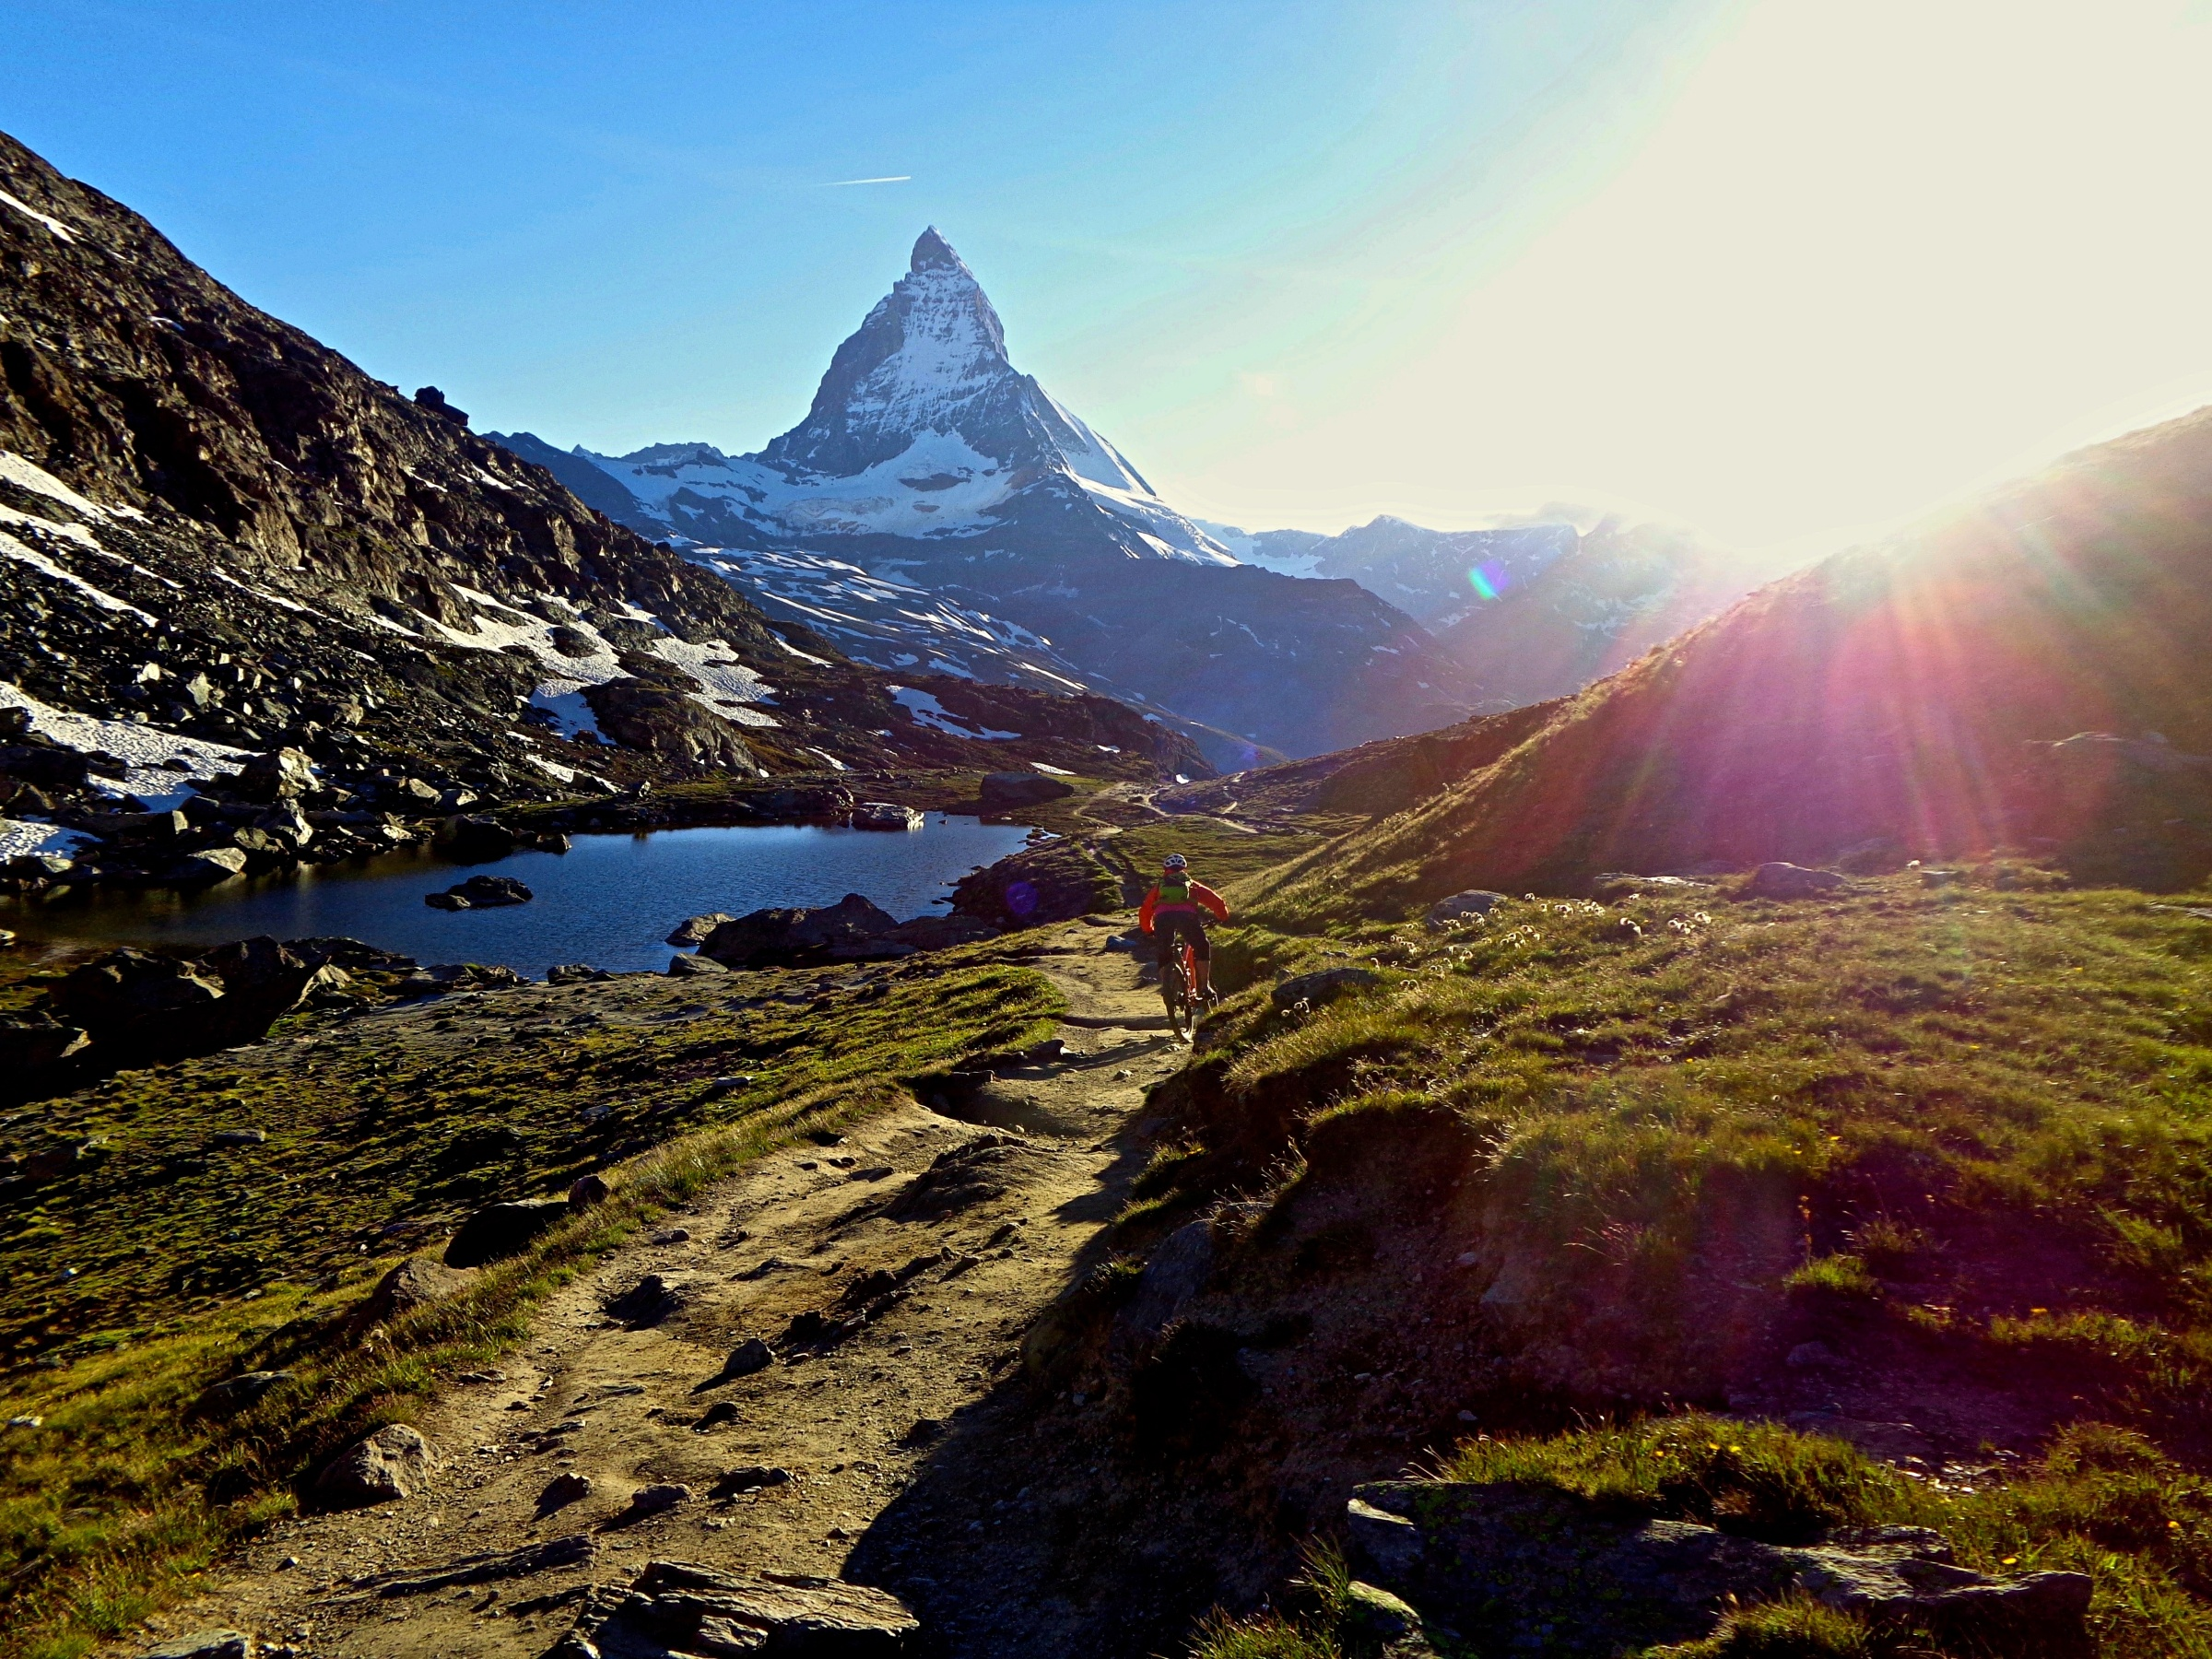 The Matterhorn is Switzerland's most famous mountain and the main reason why people come to Zermatt.